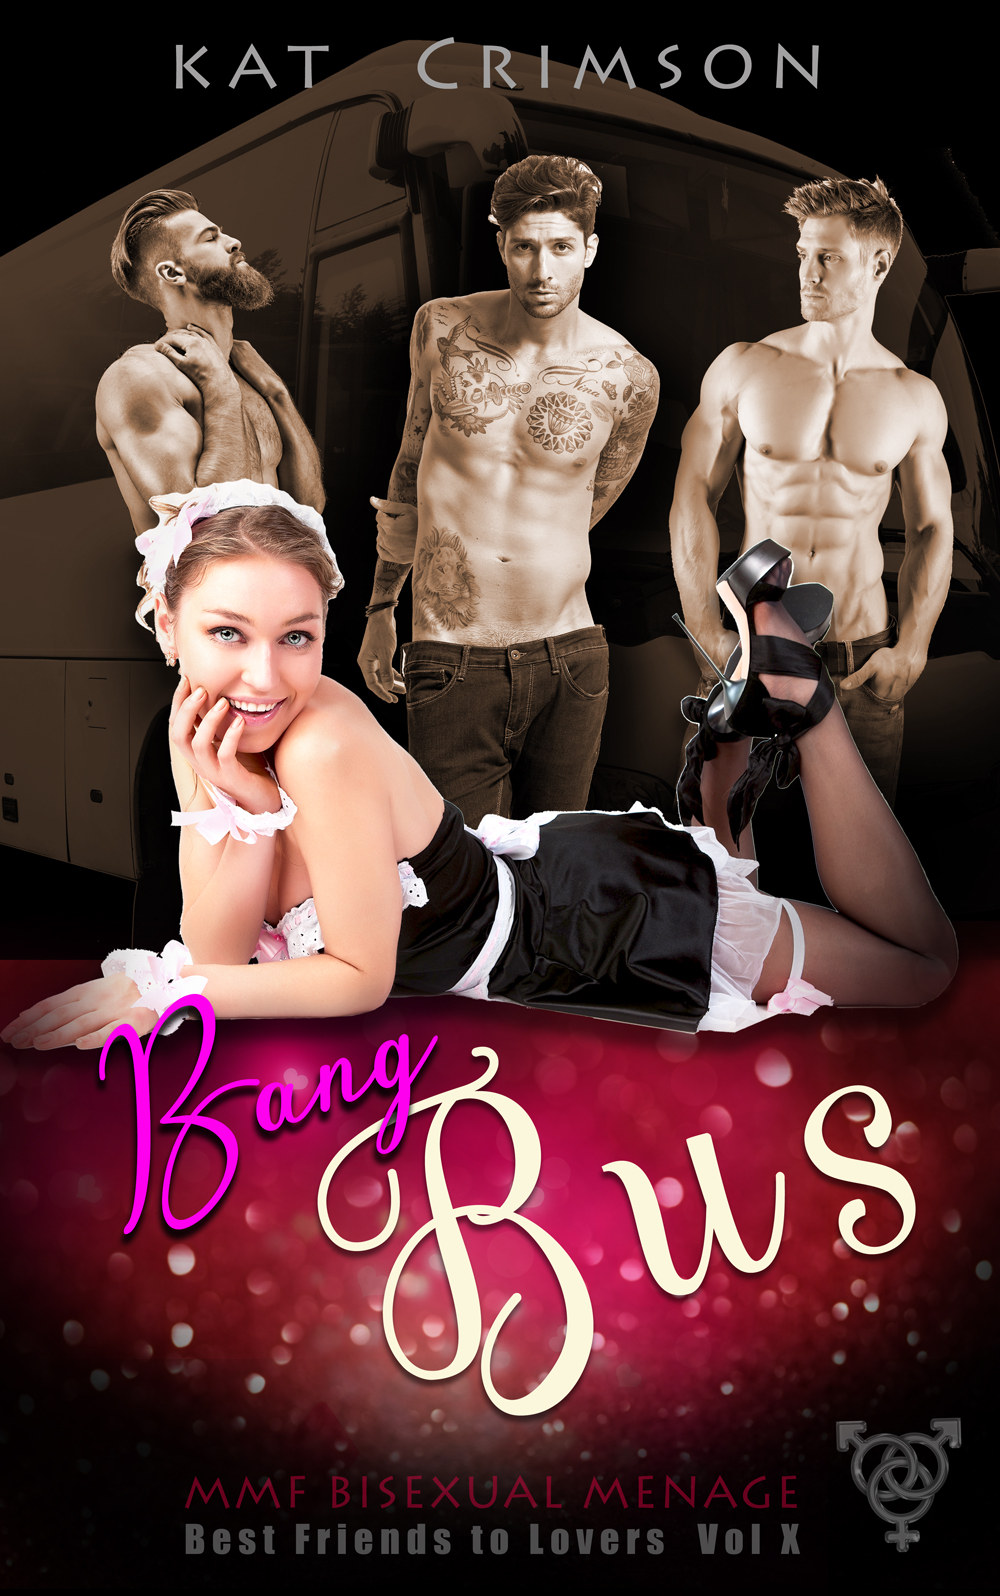 BANG BUS: MMF Bisexual Menage, Best Frineds to Lovers Volume 10, by Kat Crimson